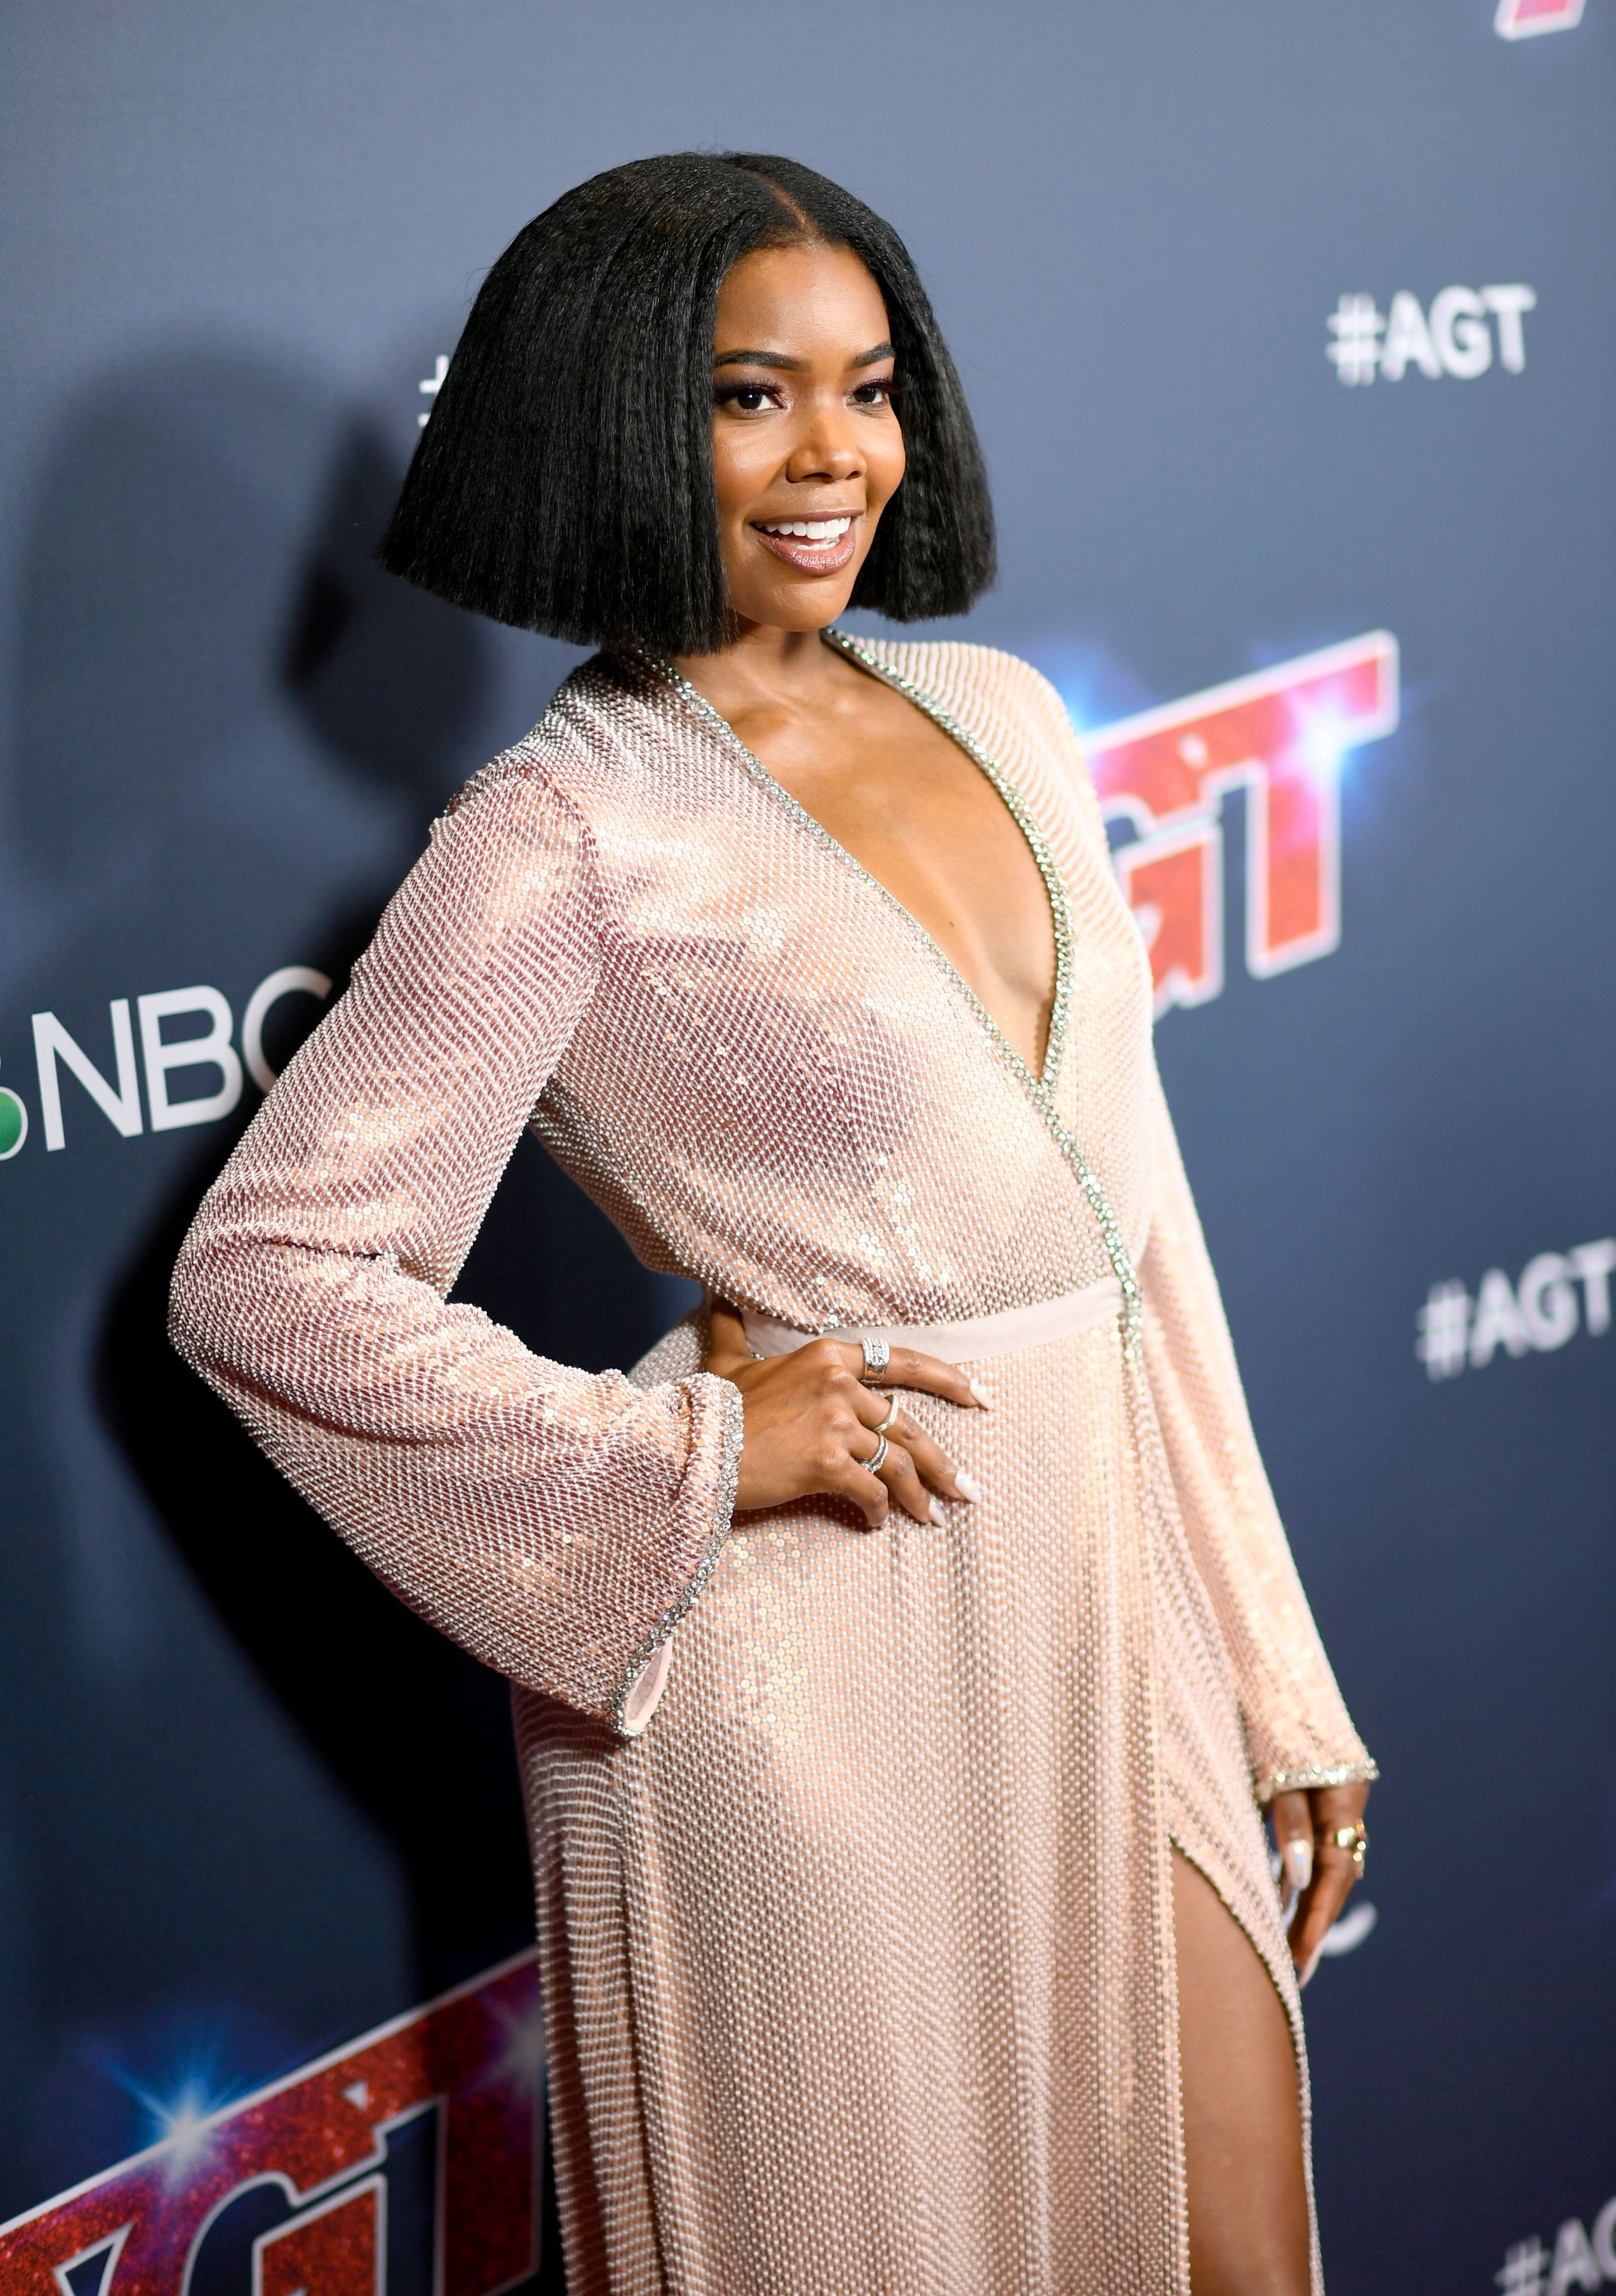 """Gabrielle Union at """"America's Got Talent"""" on September 18, 2019, in California.   Photo: Getty Images"""